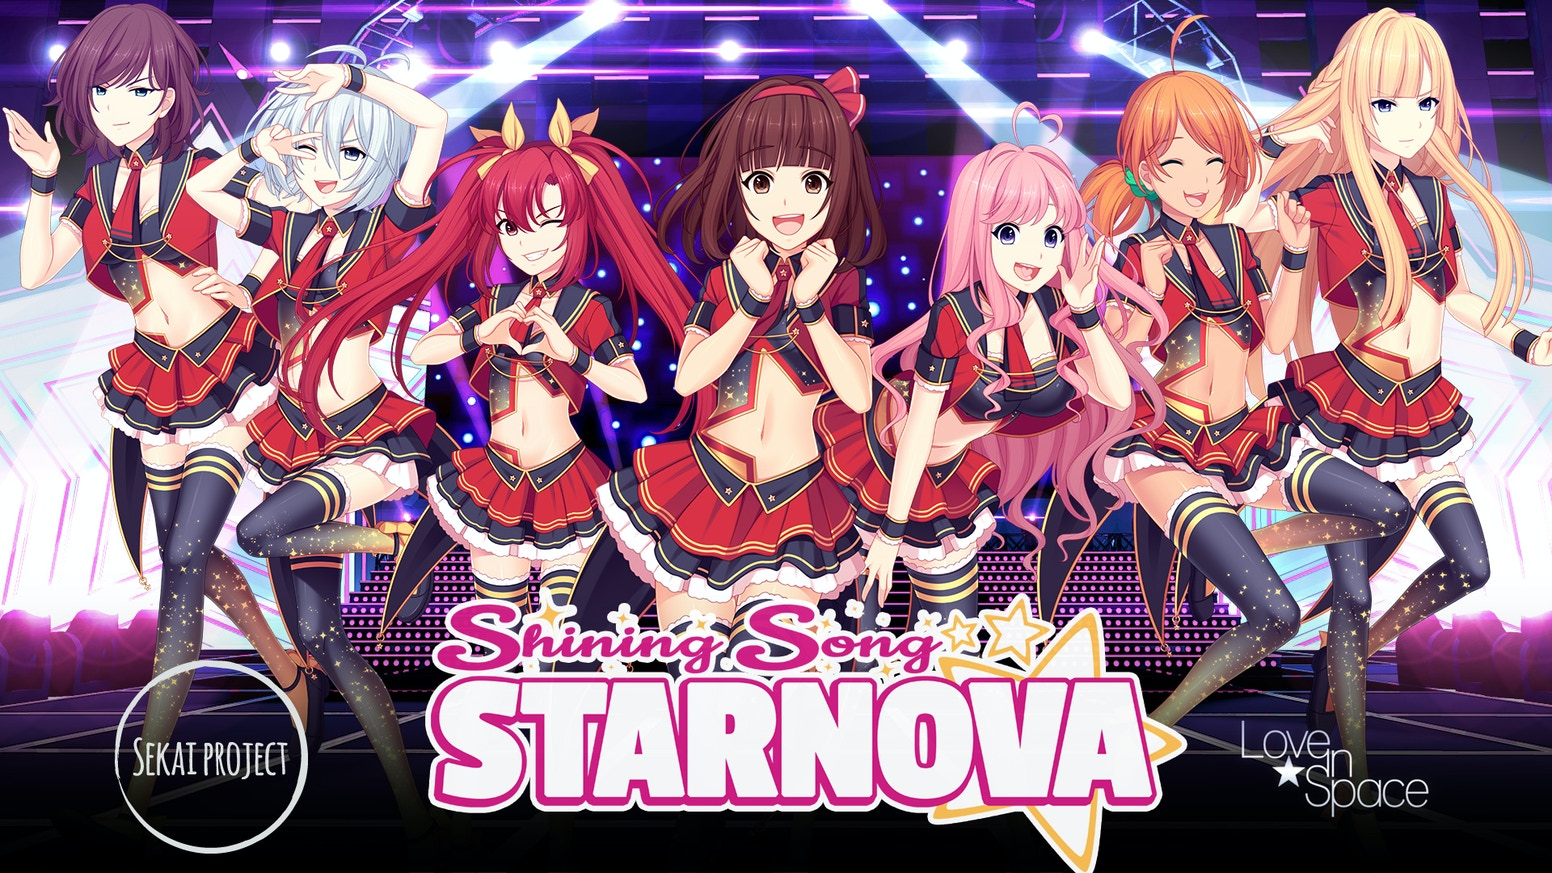 A shining and gripping visual novel all about the idol industry from the creators of